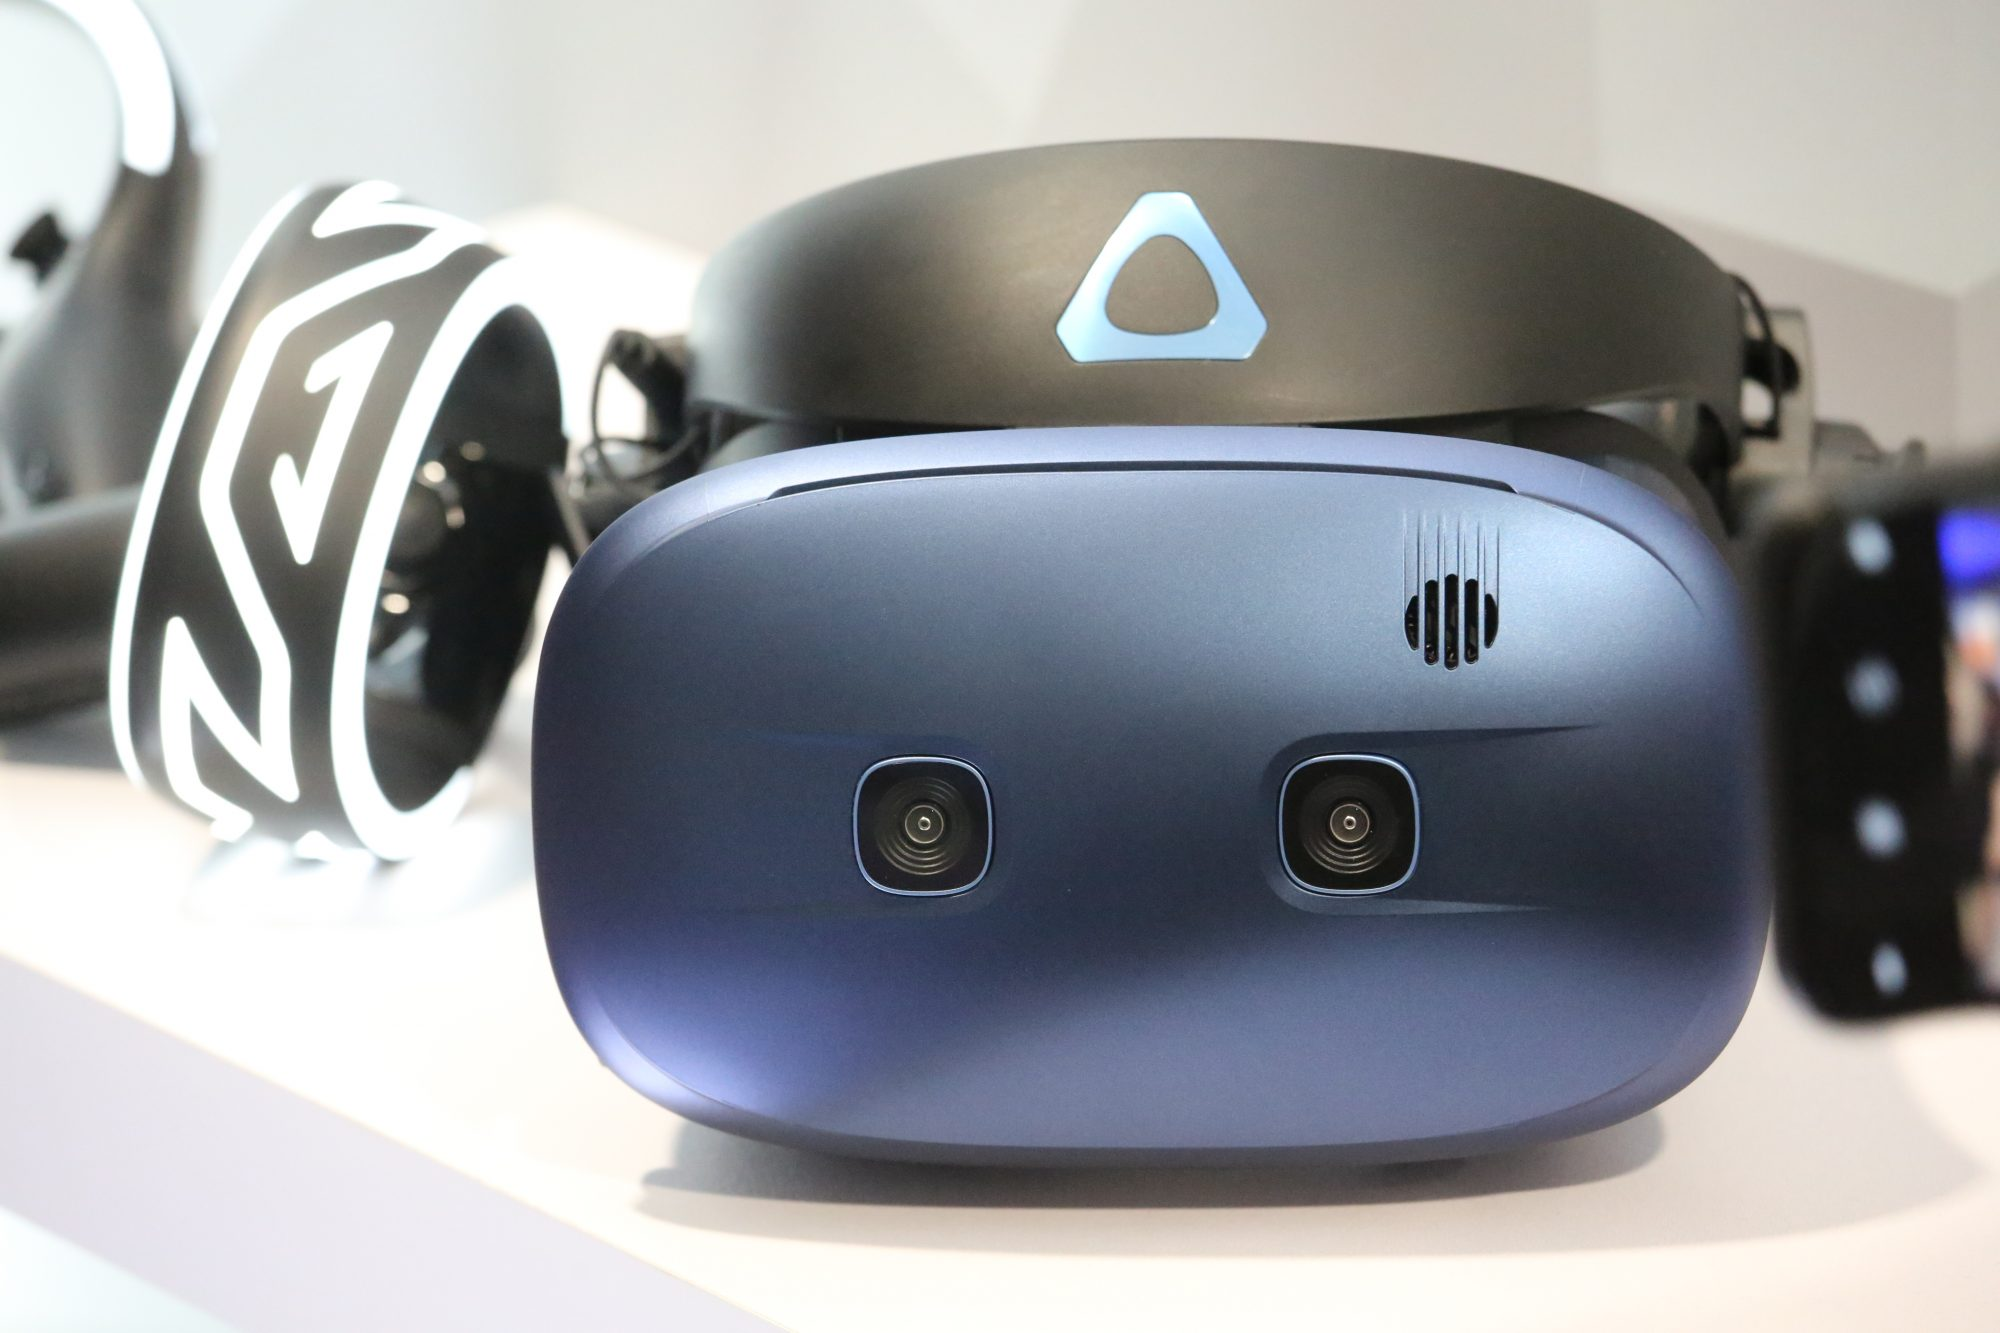 The VR headset market is about to get way too crowded and confusing